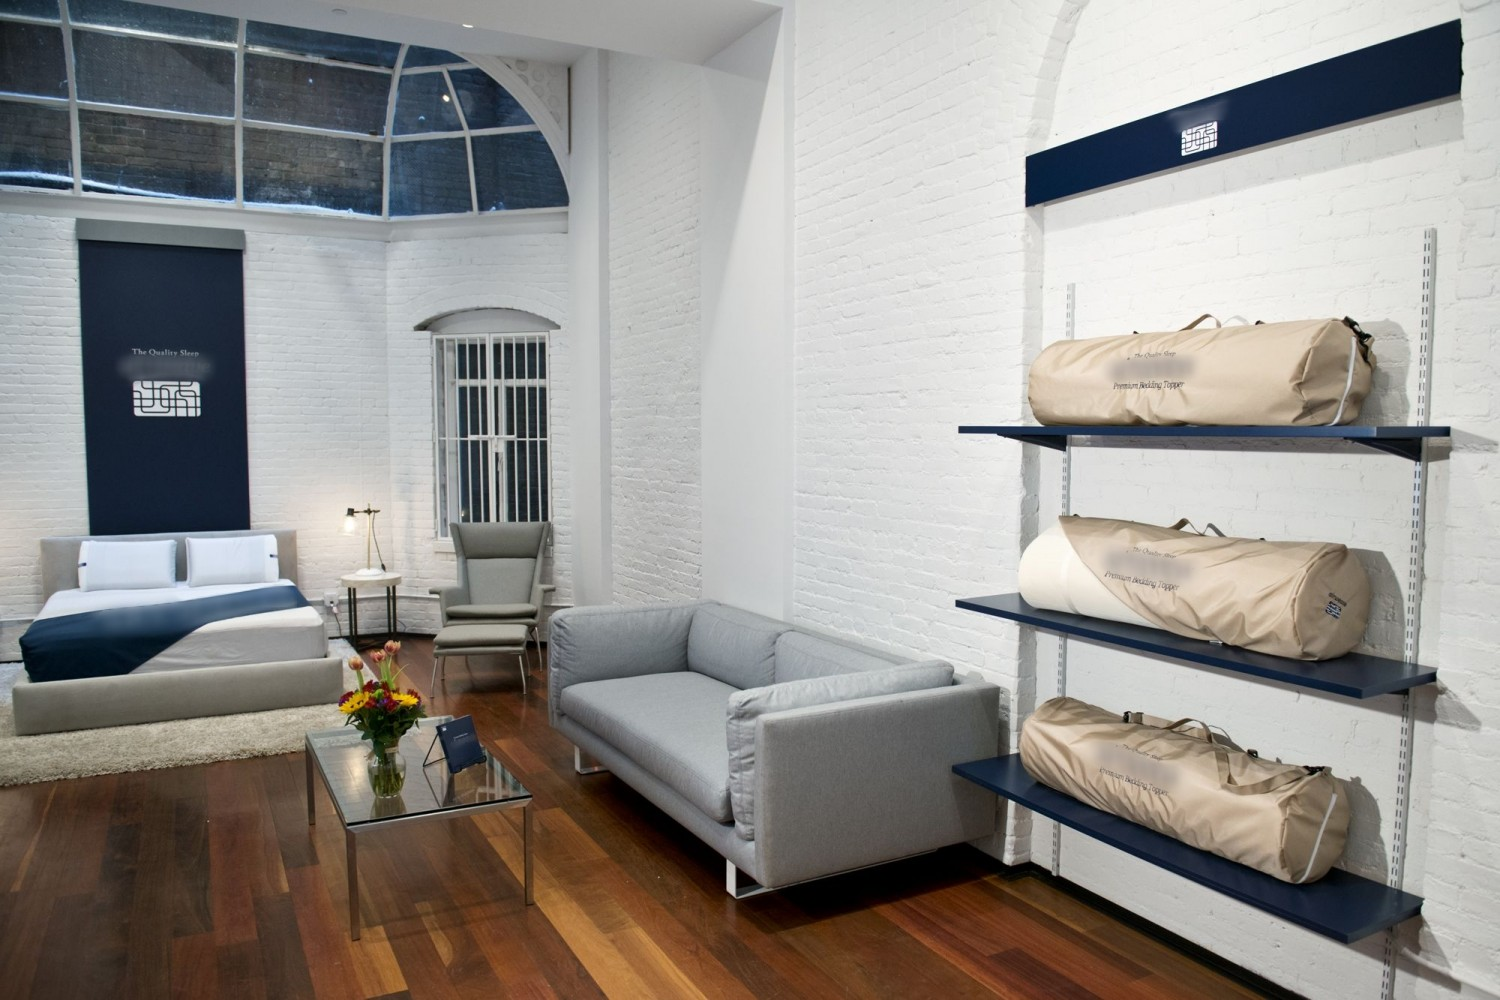 498 Broome St Pop-Up Space